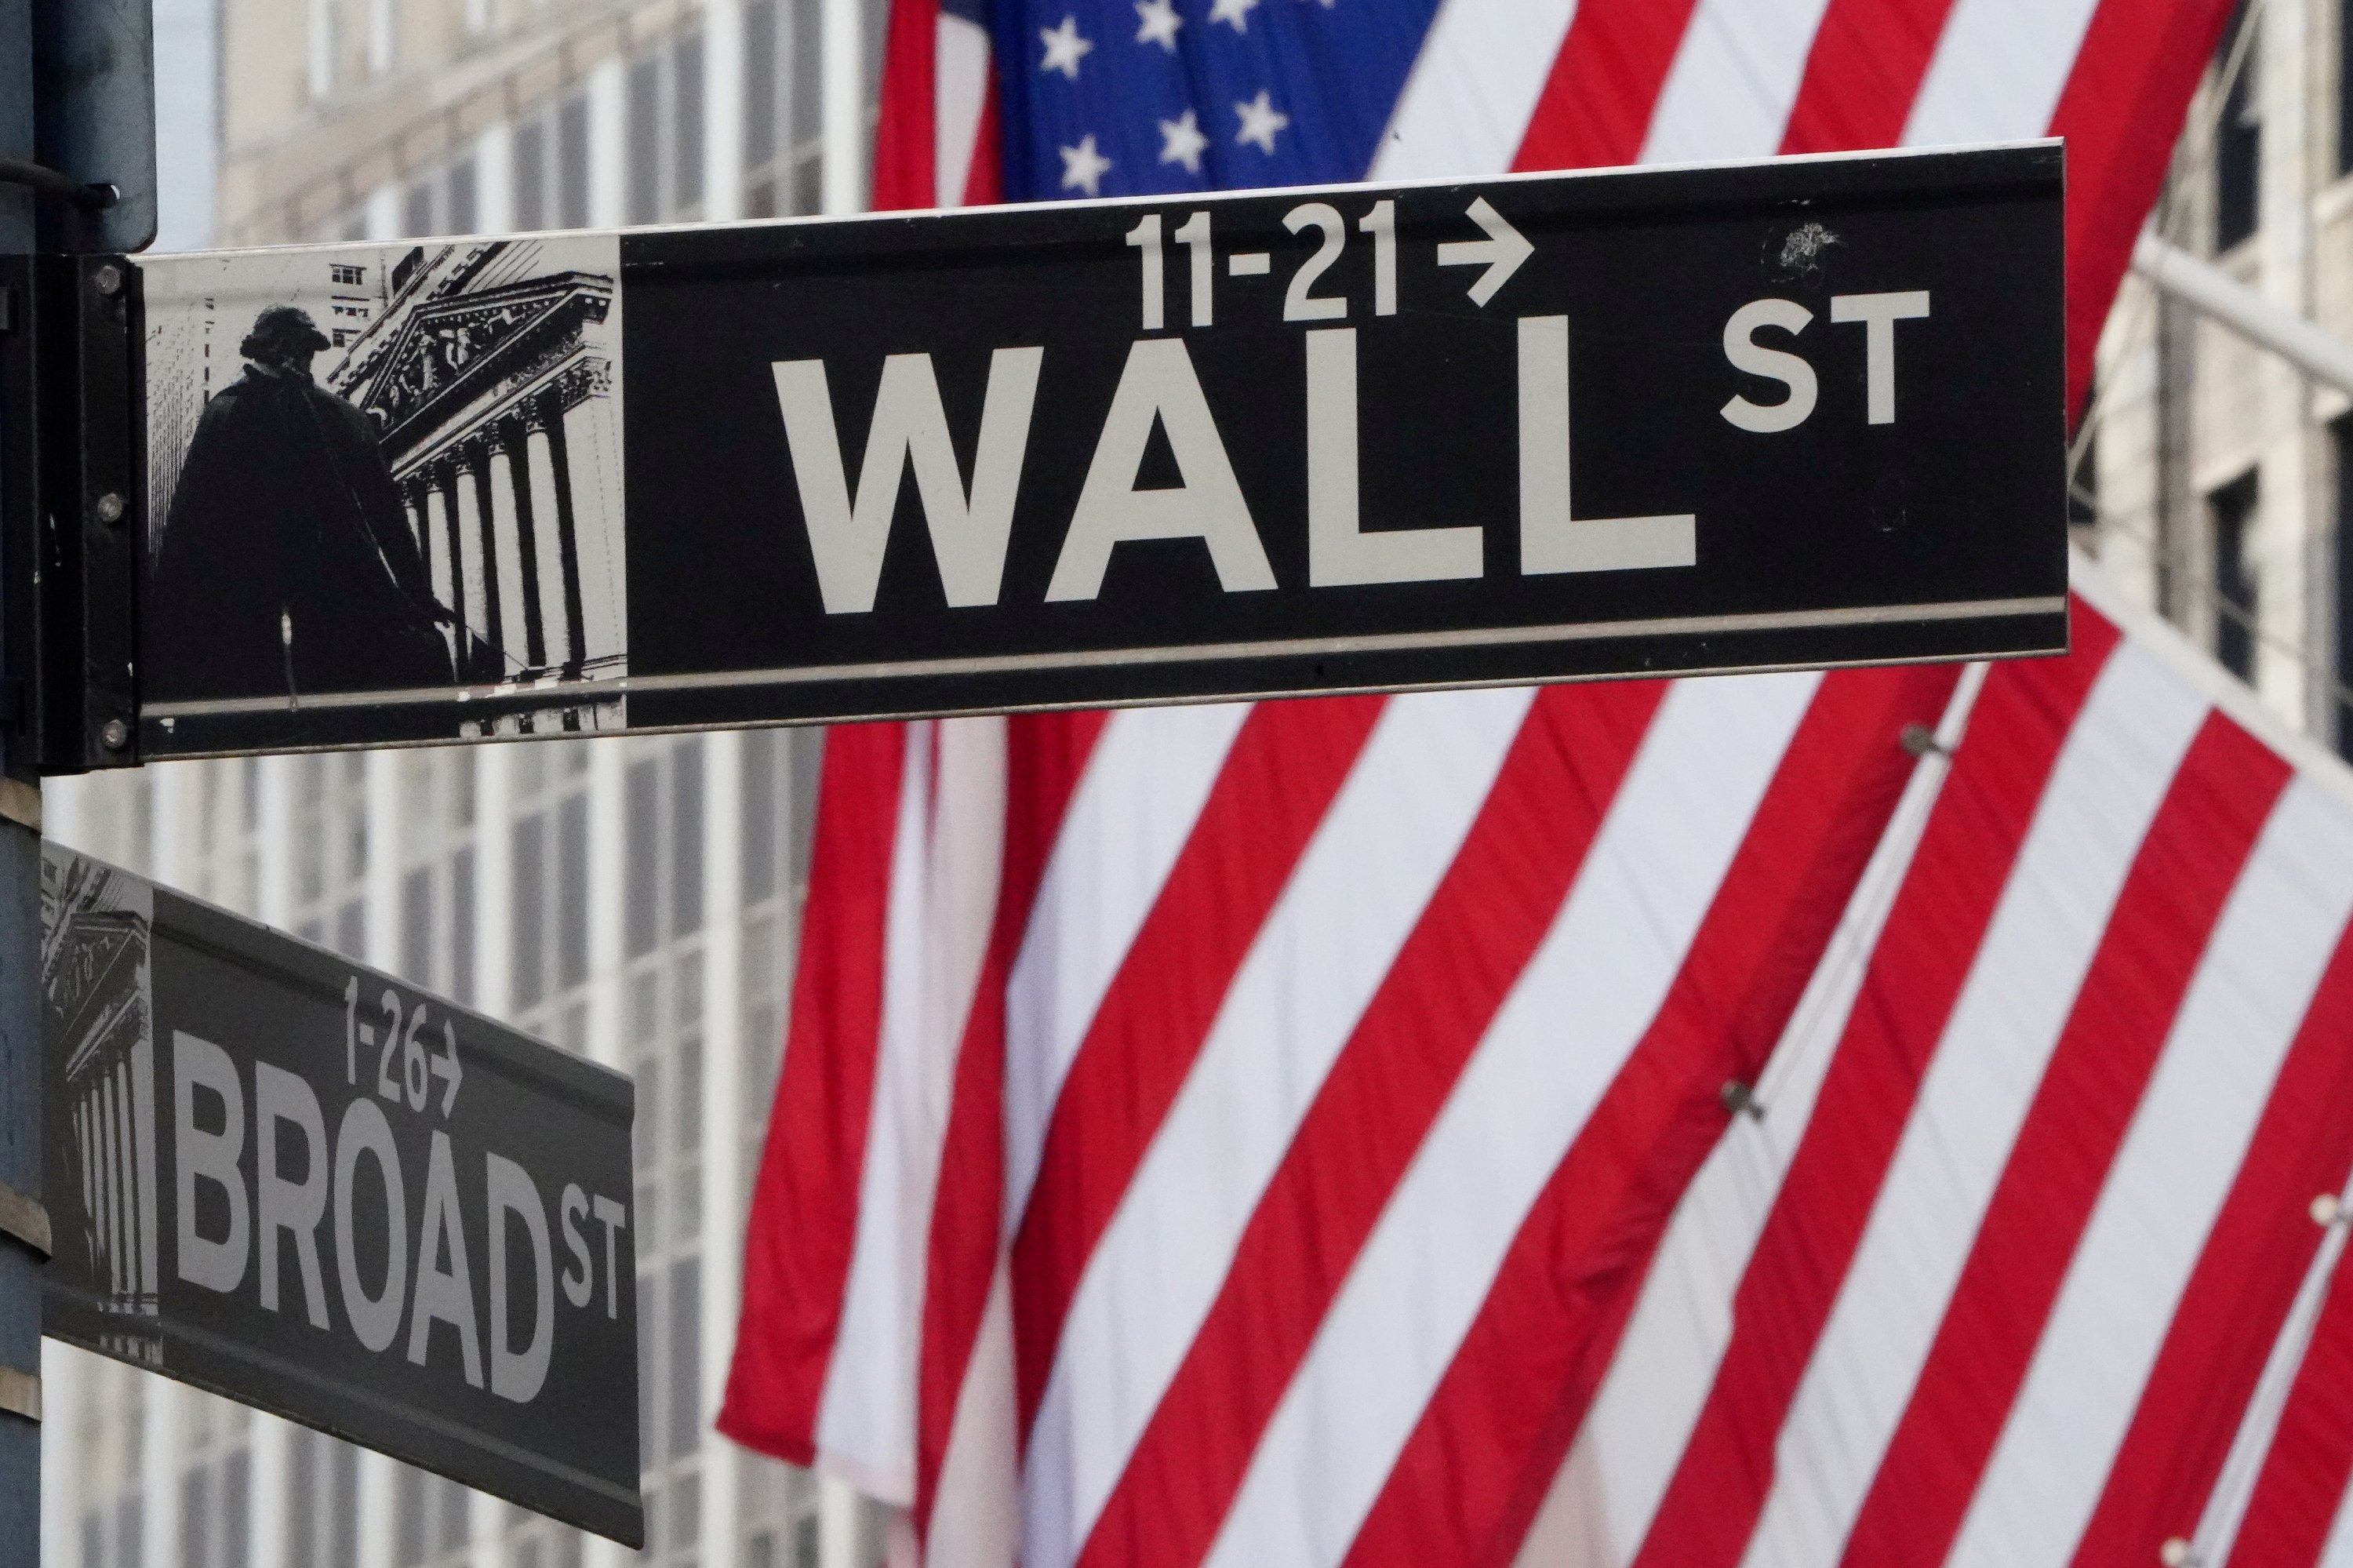 Wall Street drifts from losses to gains amid more dour data thumbnail